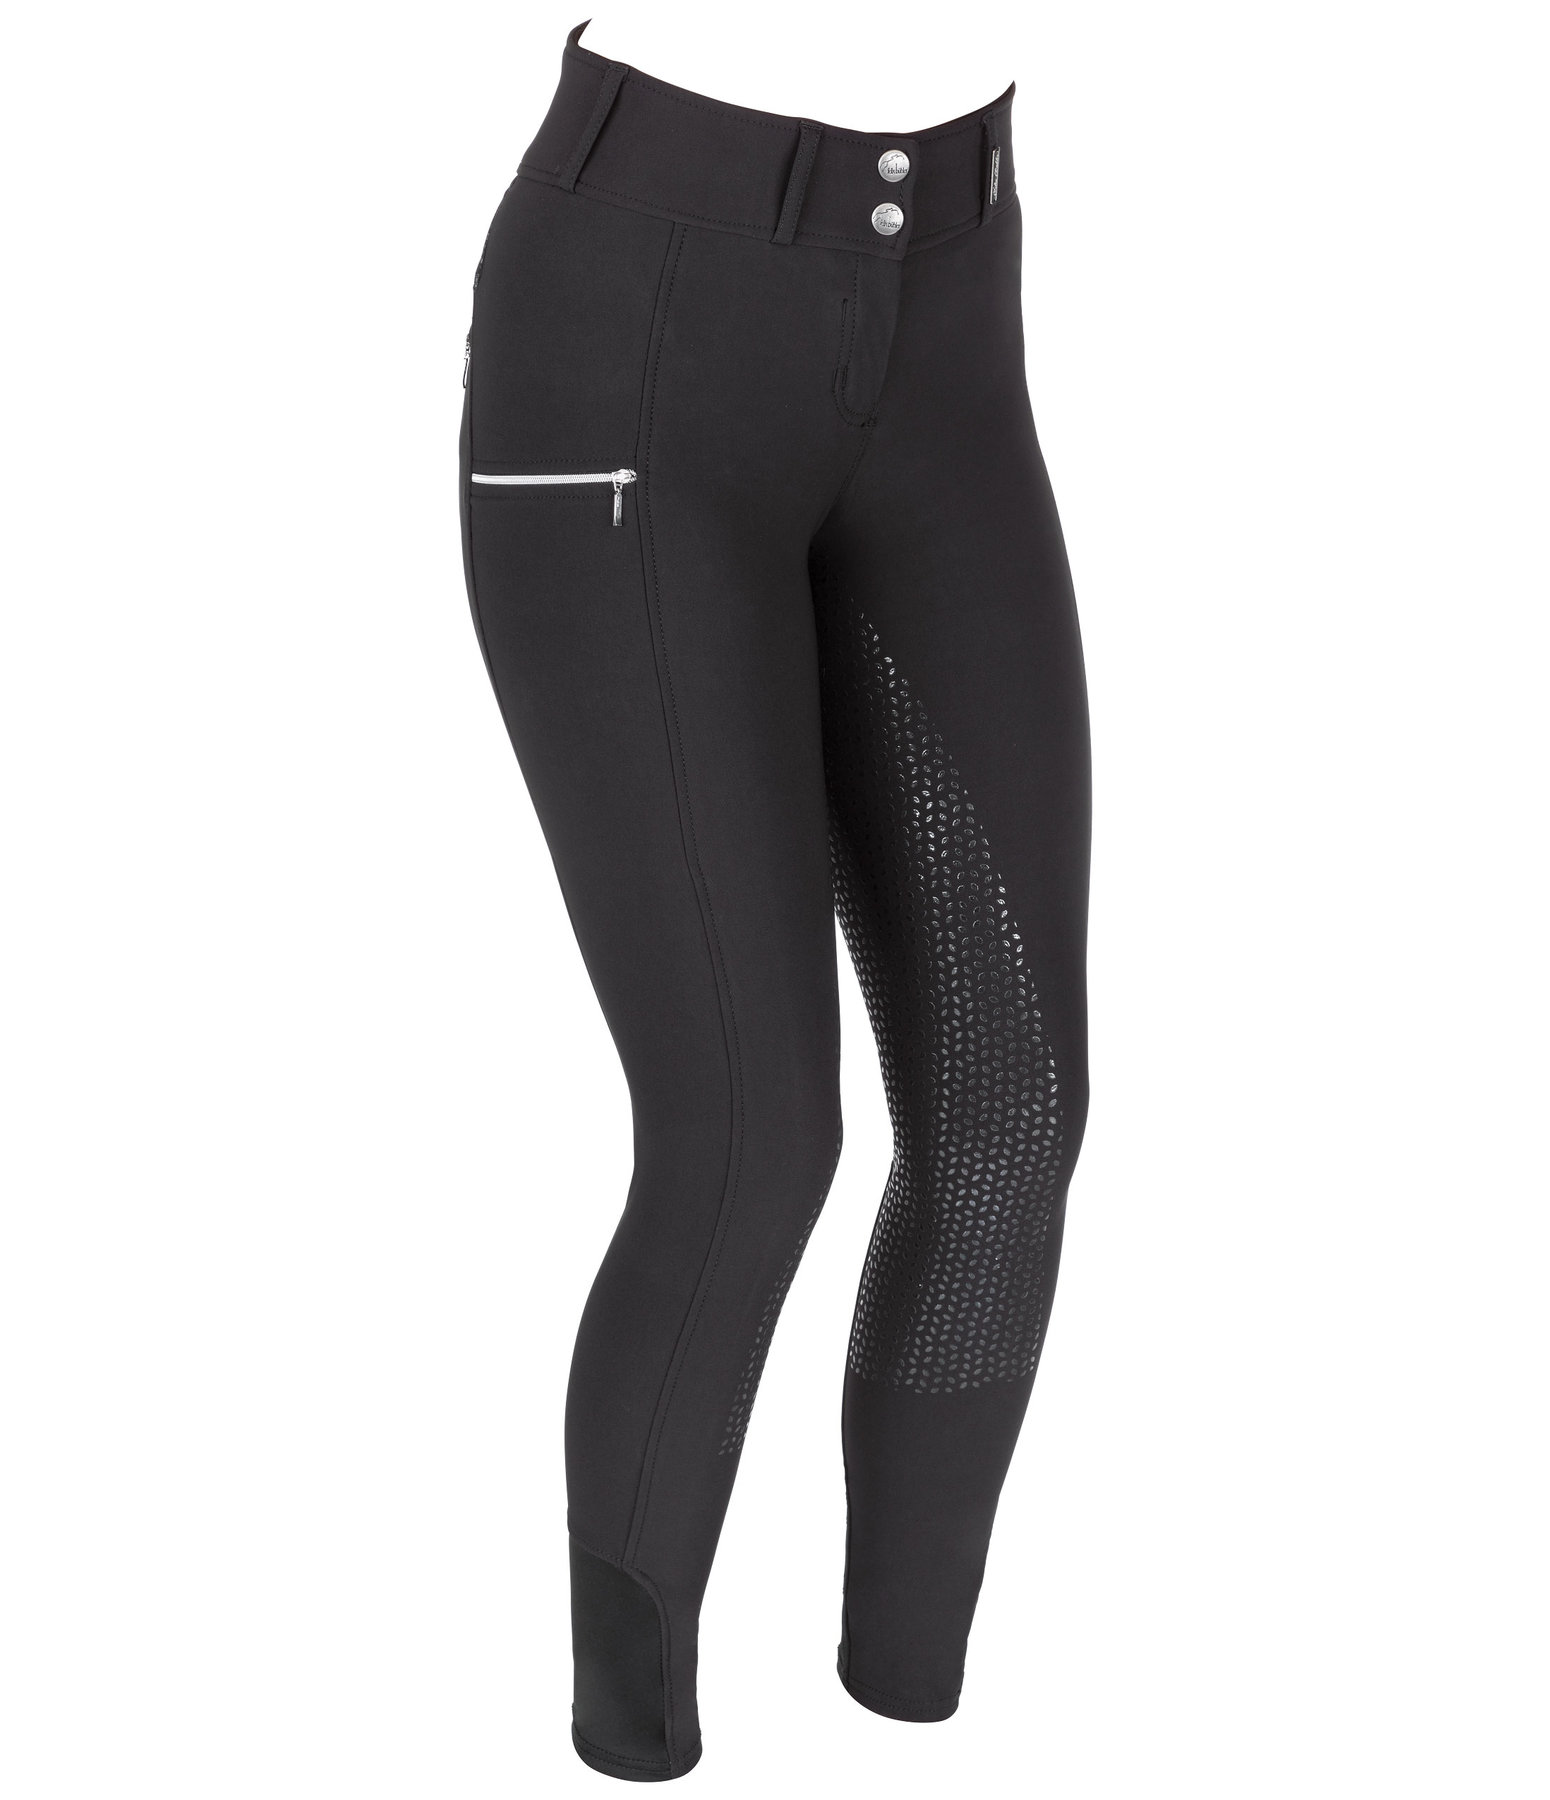 Grip Highwaist rijbroek Evelyn met zitvlak